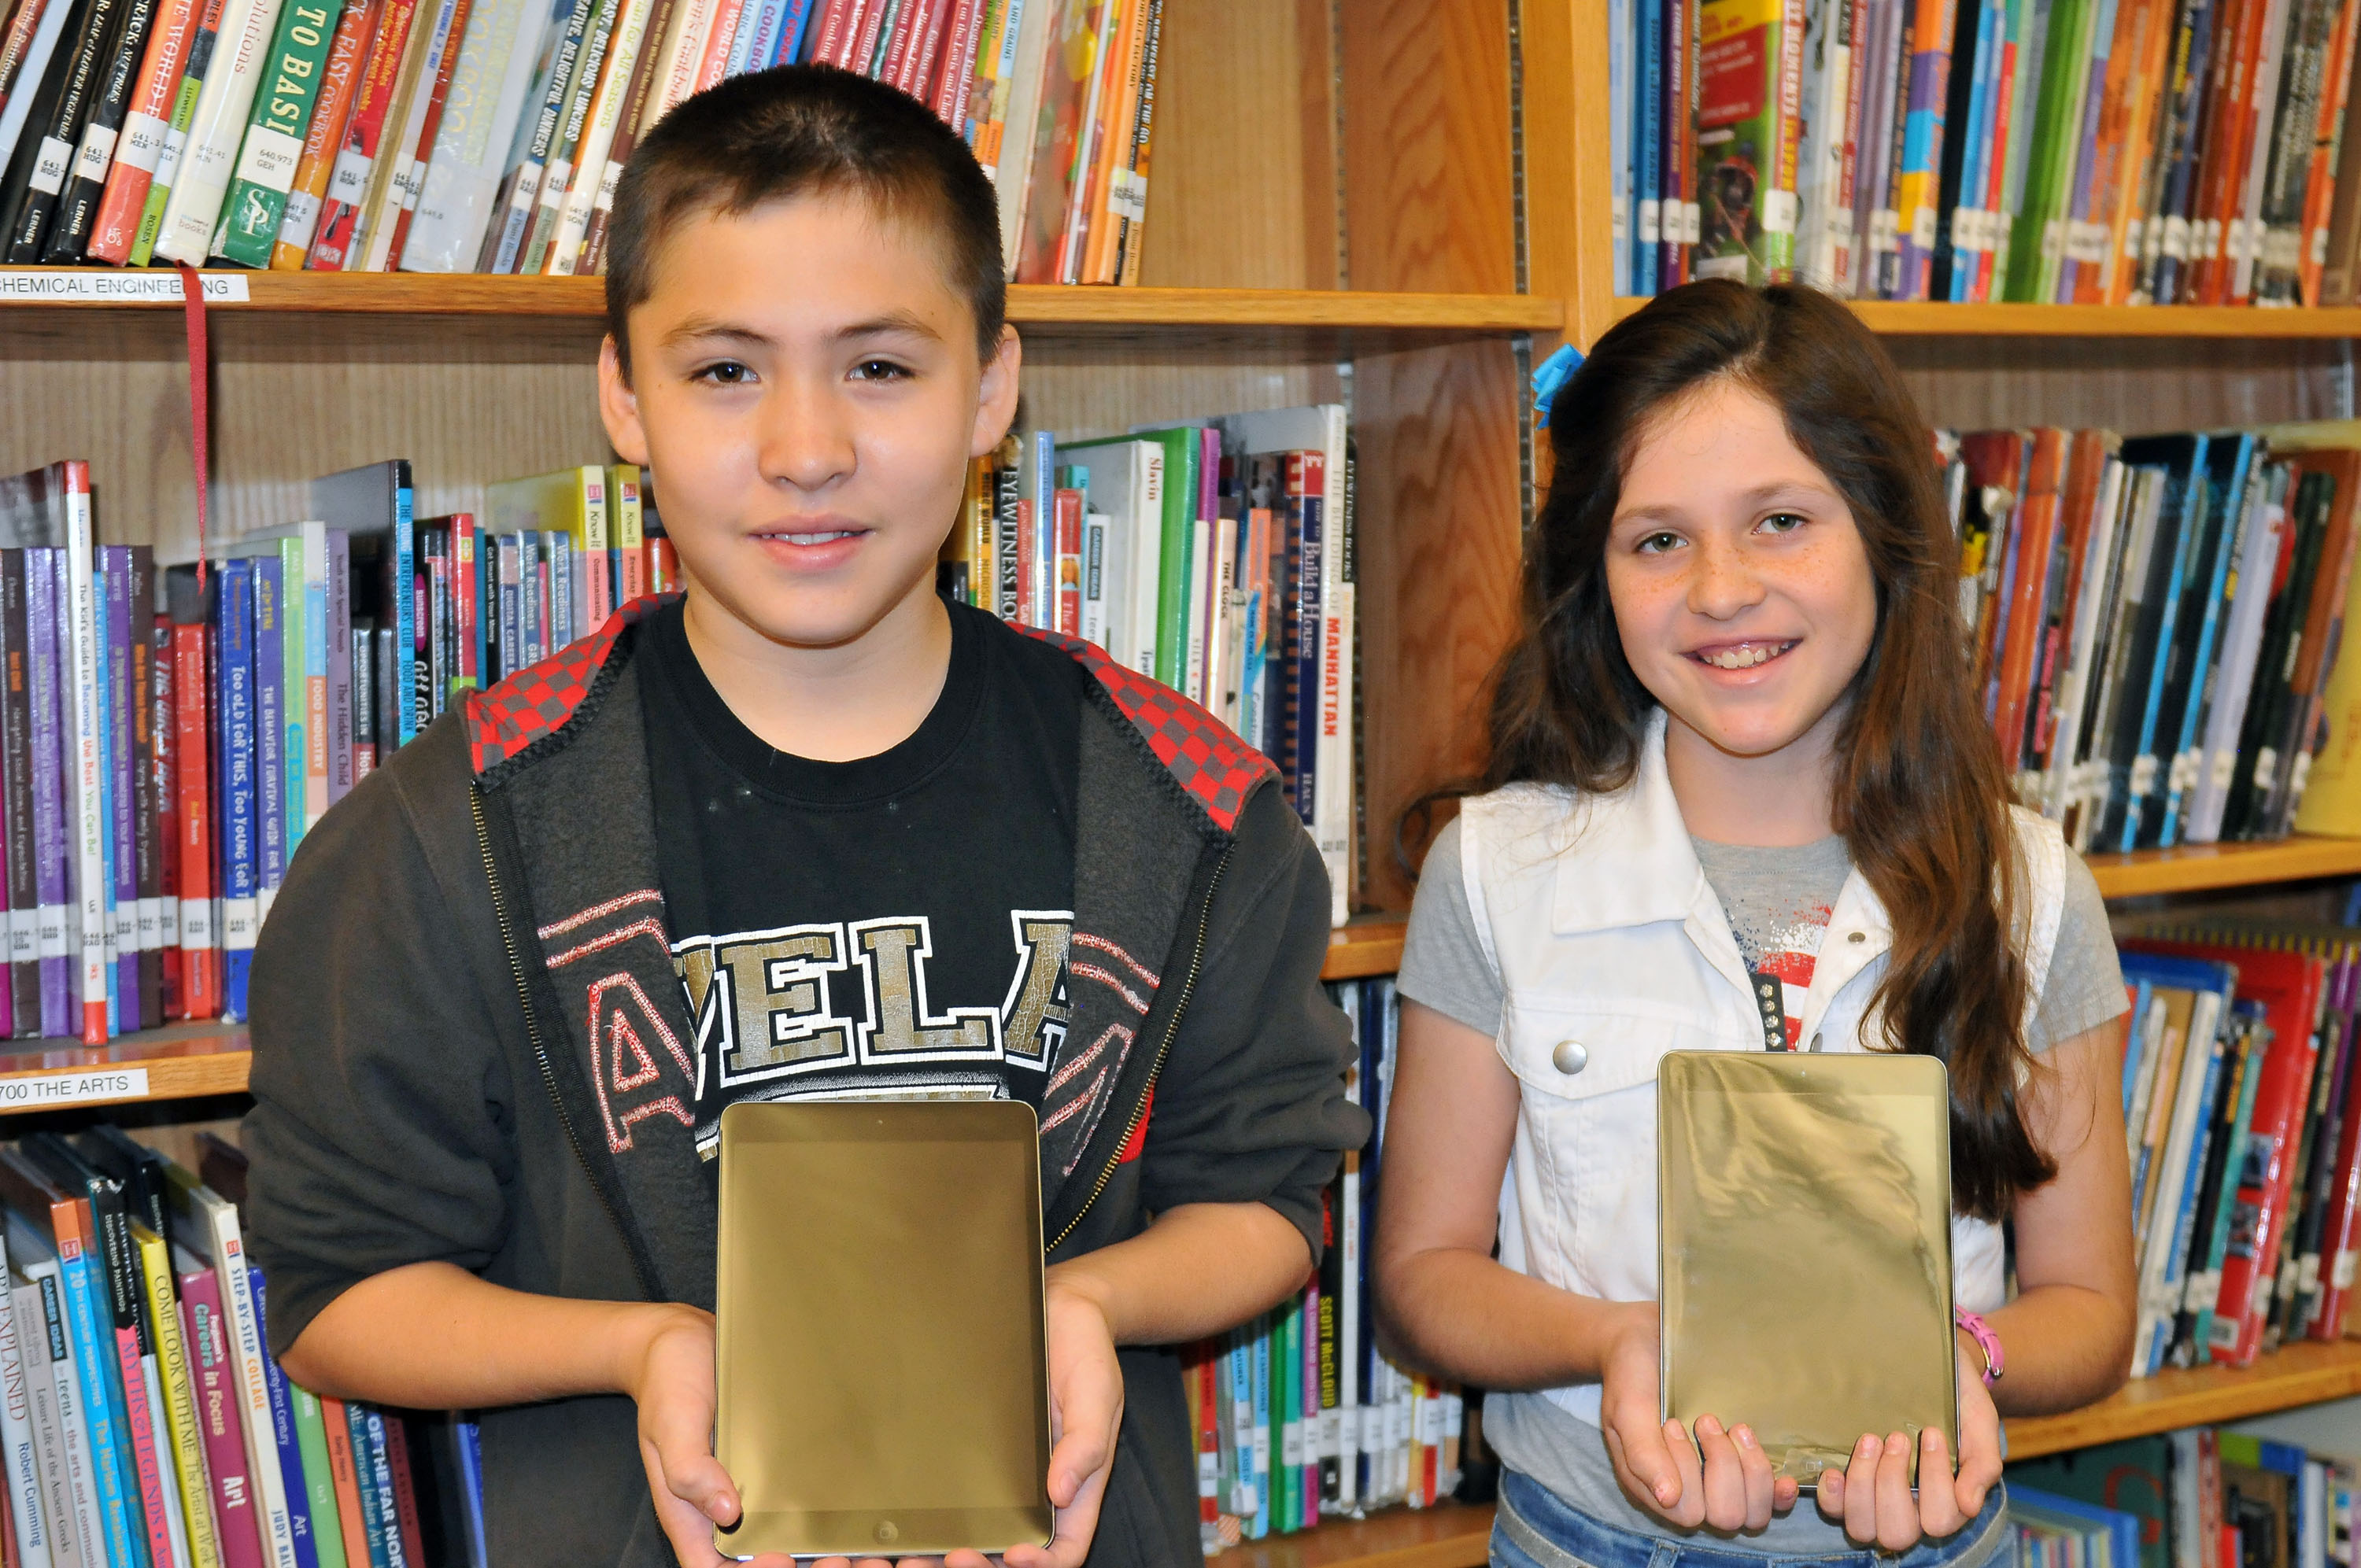 Perfect attendance pays off: iPad mini winners selected as part of HCISD attendance program